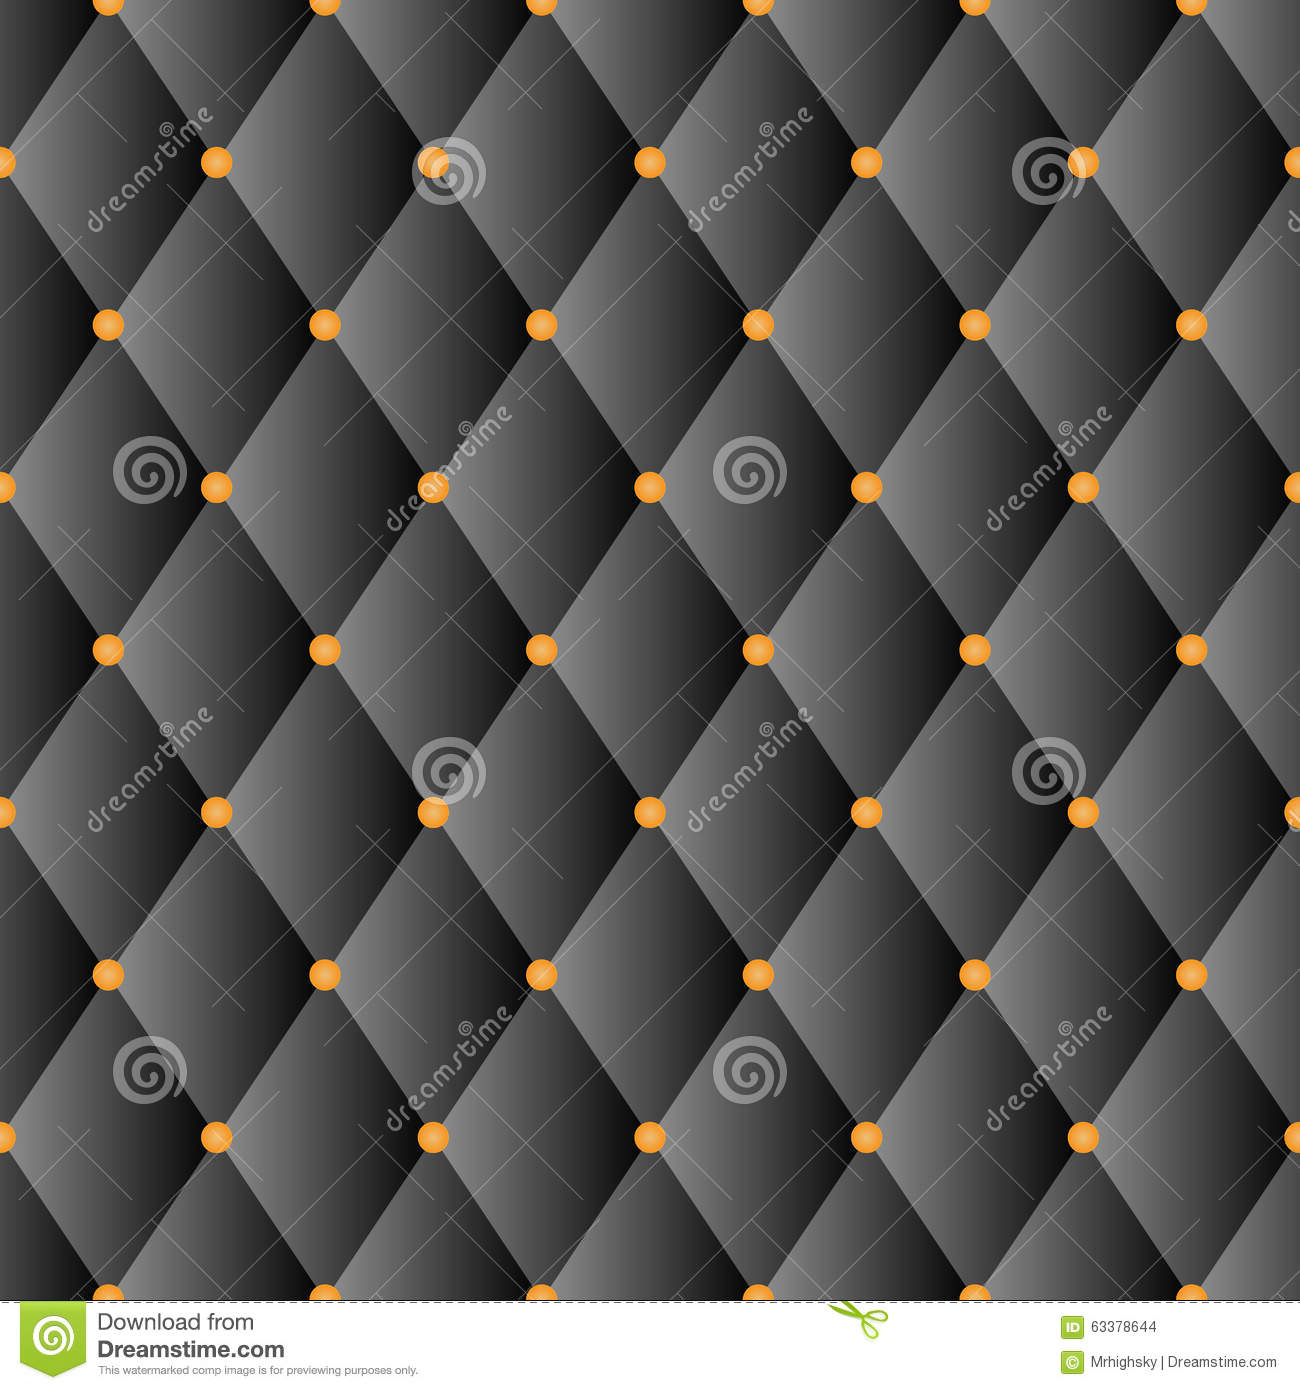 Sofa Texture Vector Black Luxury Sofa Diamond Pattern Stock Vector Illustration Of